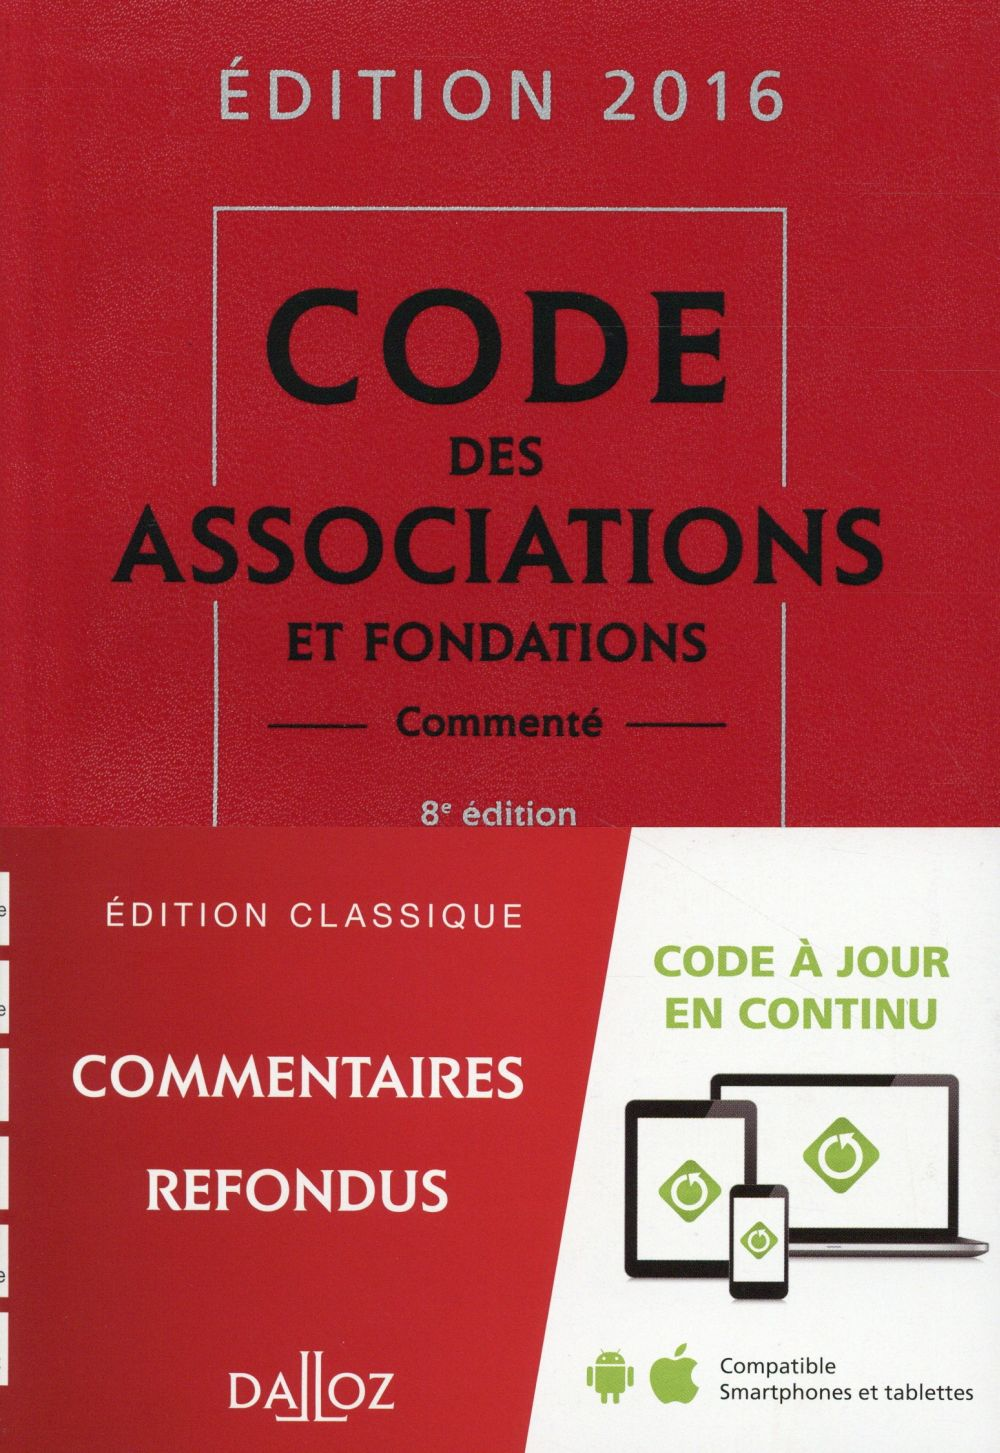 CODE DES ASSOCIATIONS ET FONDATIONS 2016, COMMENTE - 8E ED.